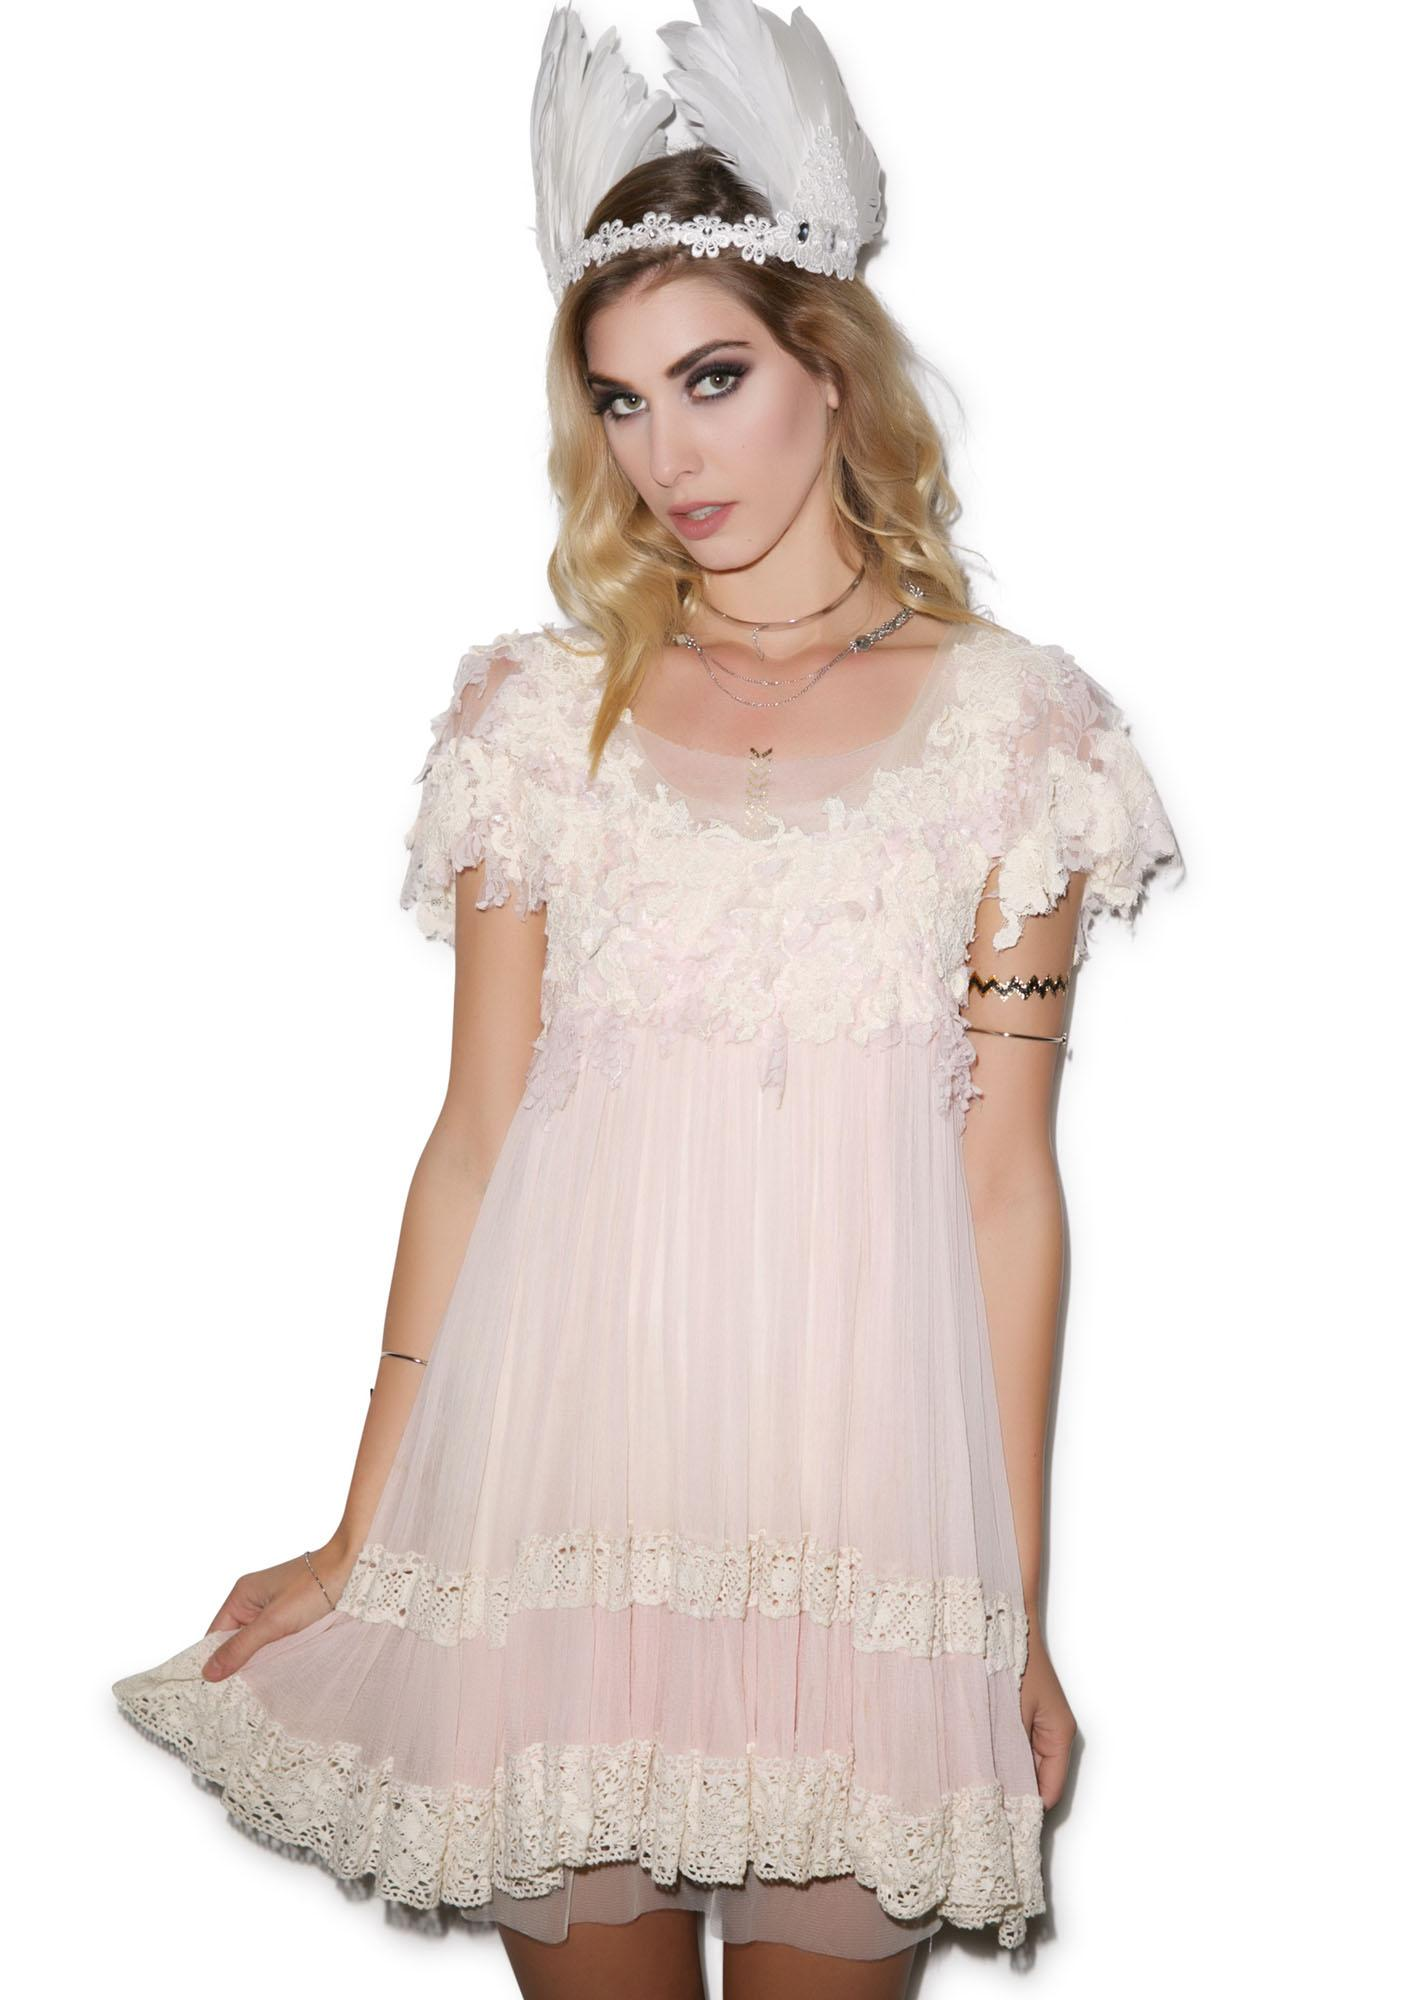 Dolly Bae Fall in Love Lace Dress